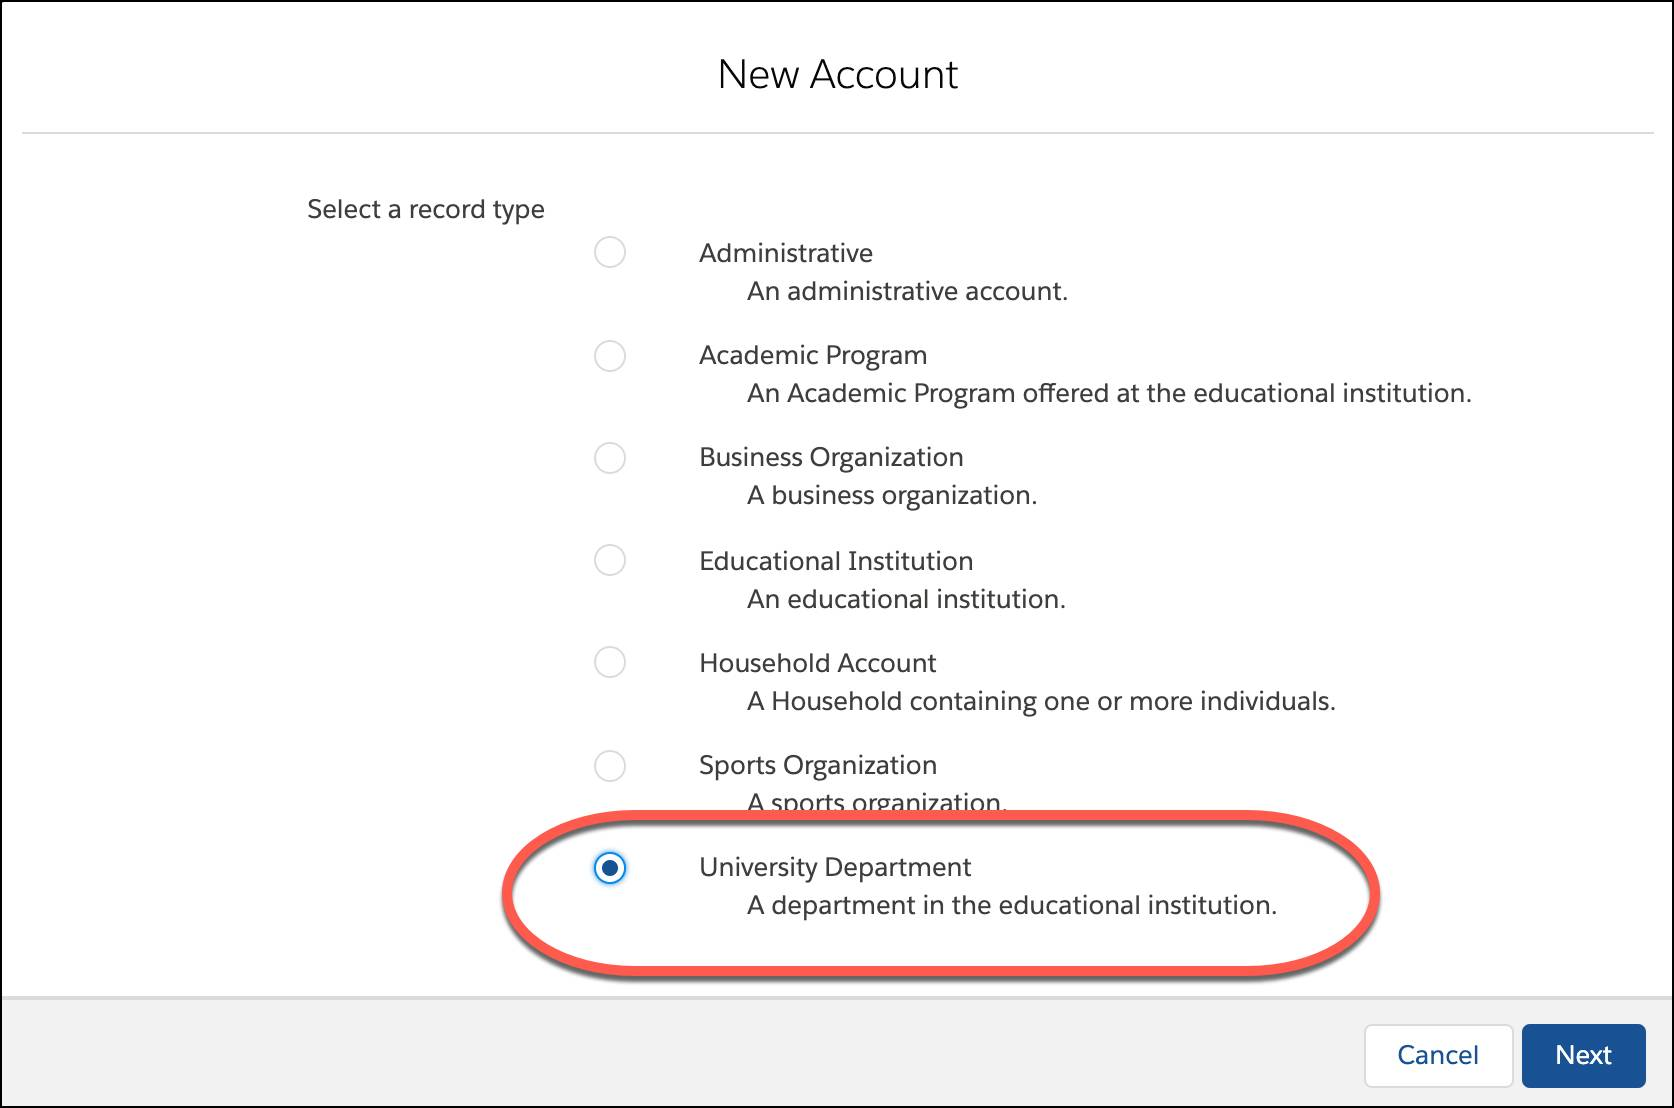 Select University Department as the record type and then click New.